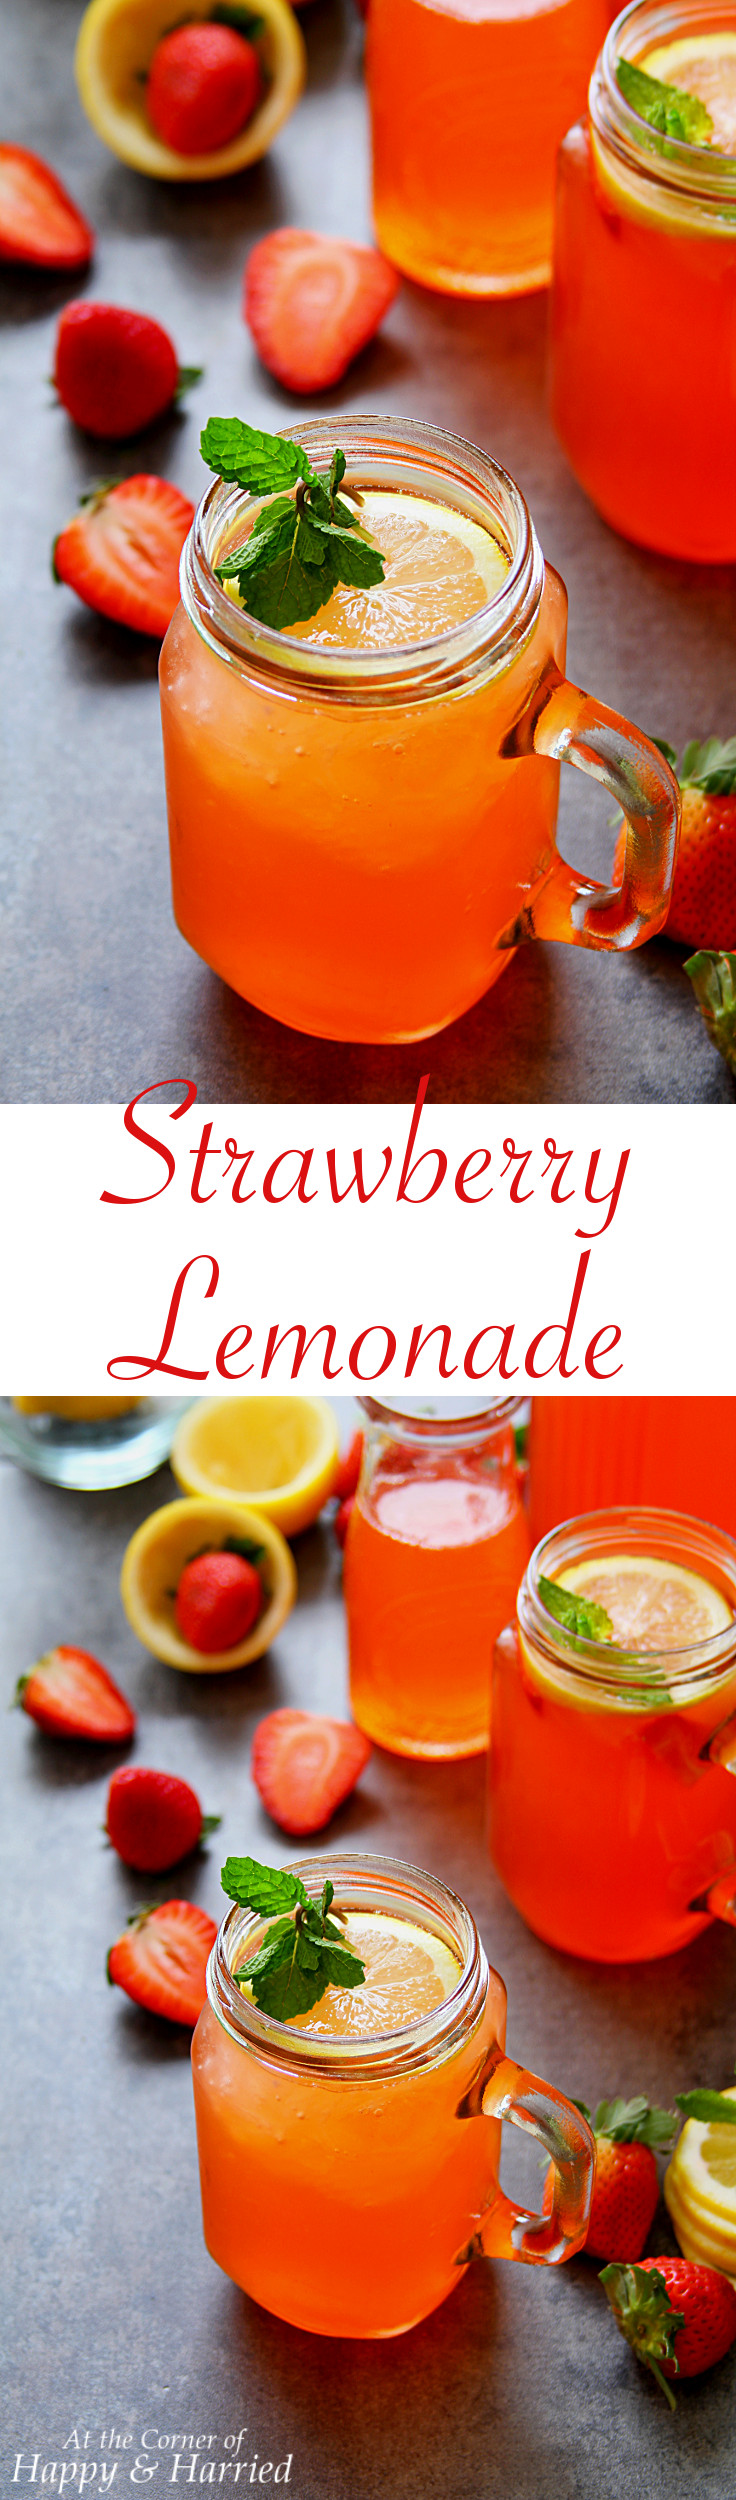 STRAWBERRY LEMONADE - HAPPY&HARRIED